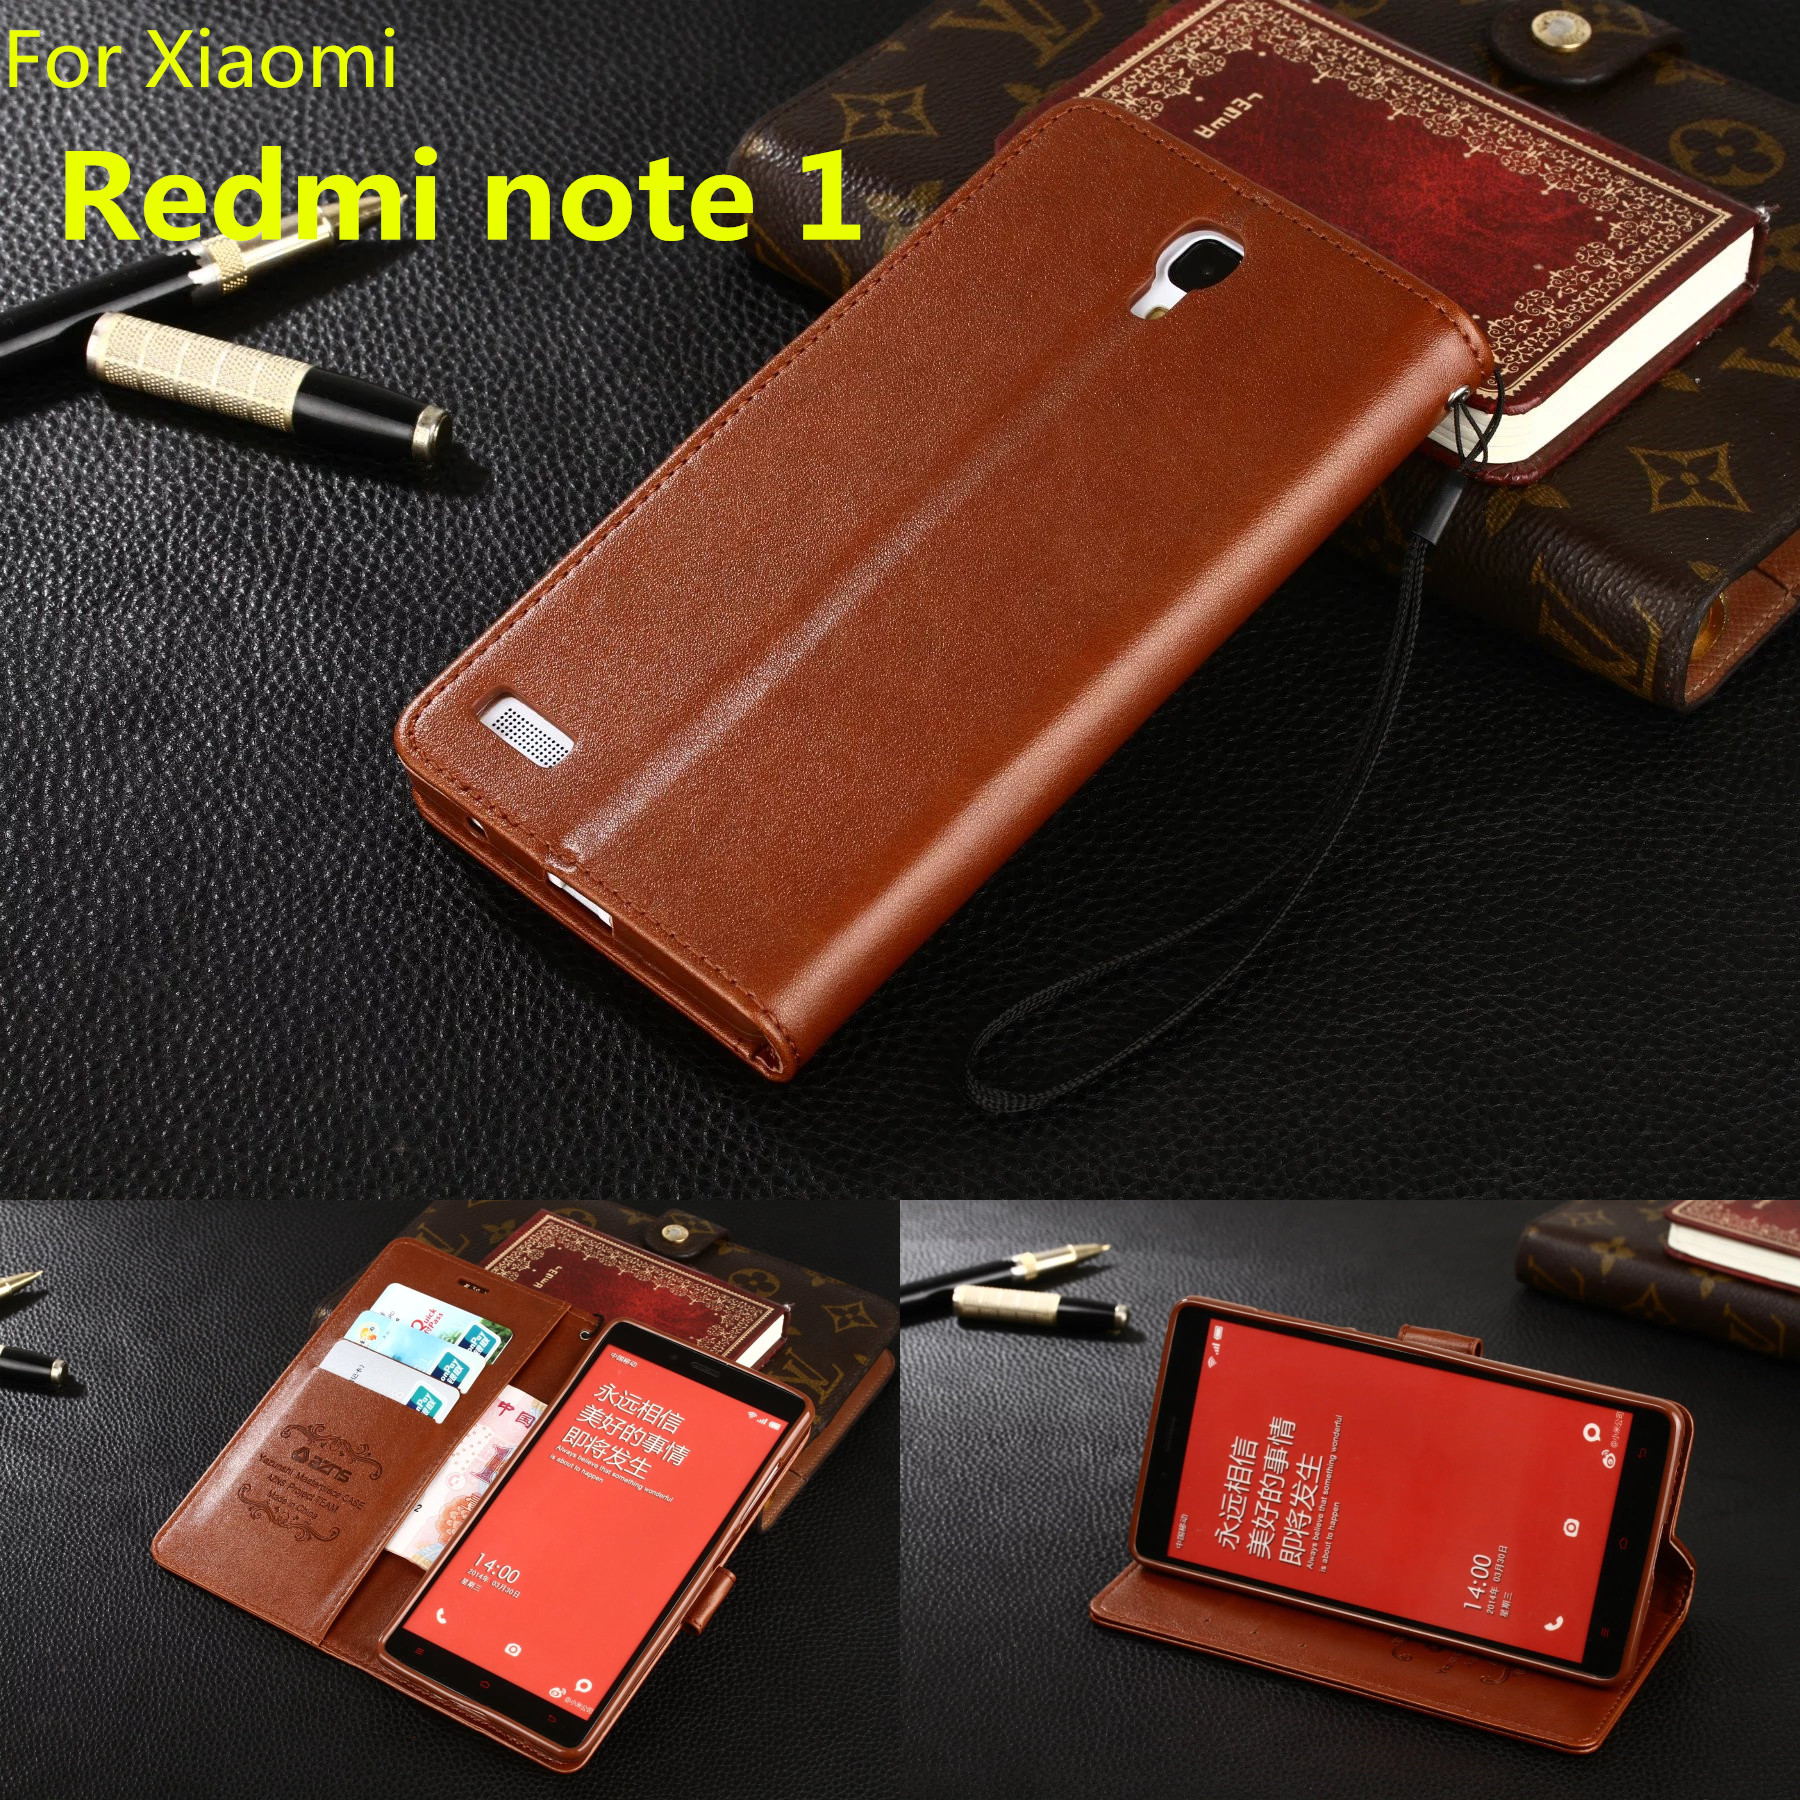 info for 523d4 a0069 US $9.99 |Red rice Note 1 Ultra thin flip cover pu leather cover phone case  for Xiaomi Redmi Note 1 LTE 4G case wallet card holder Holster-in Flip ...